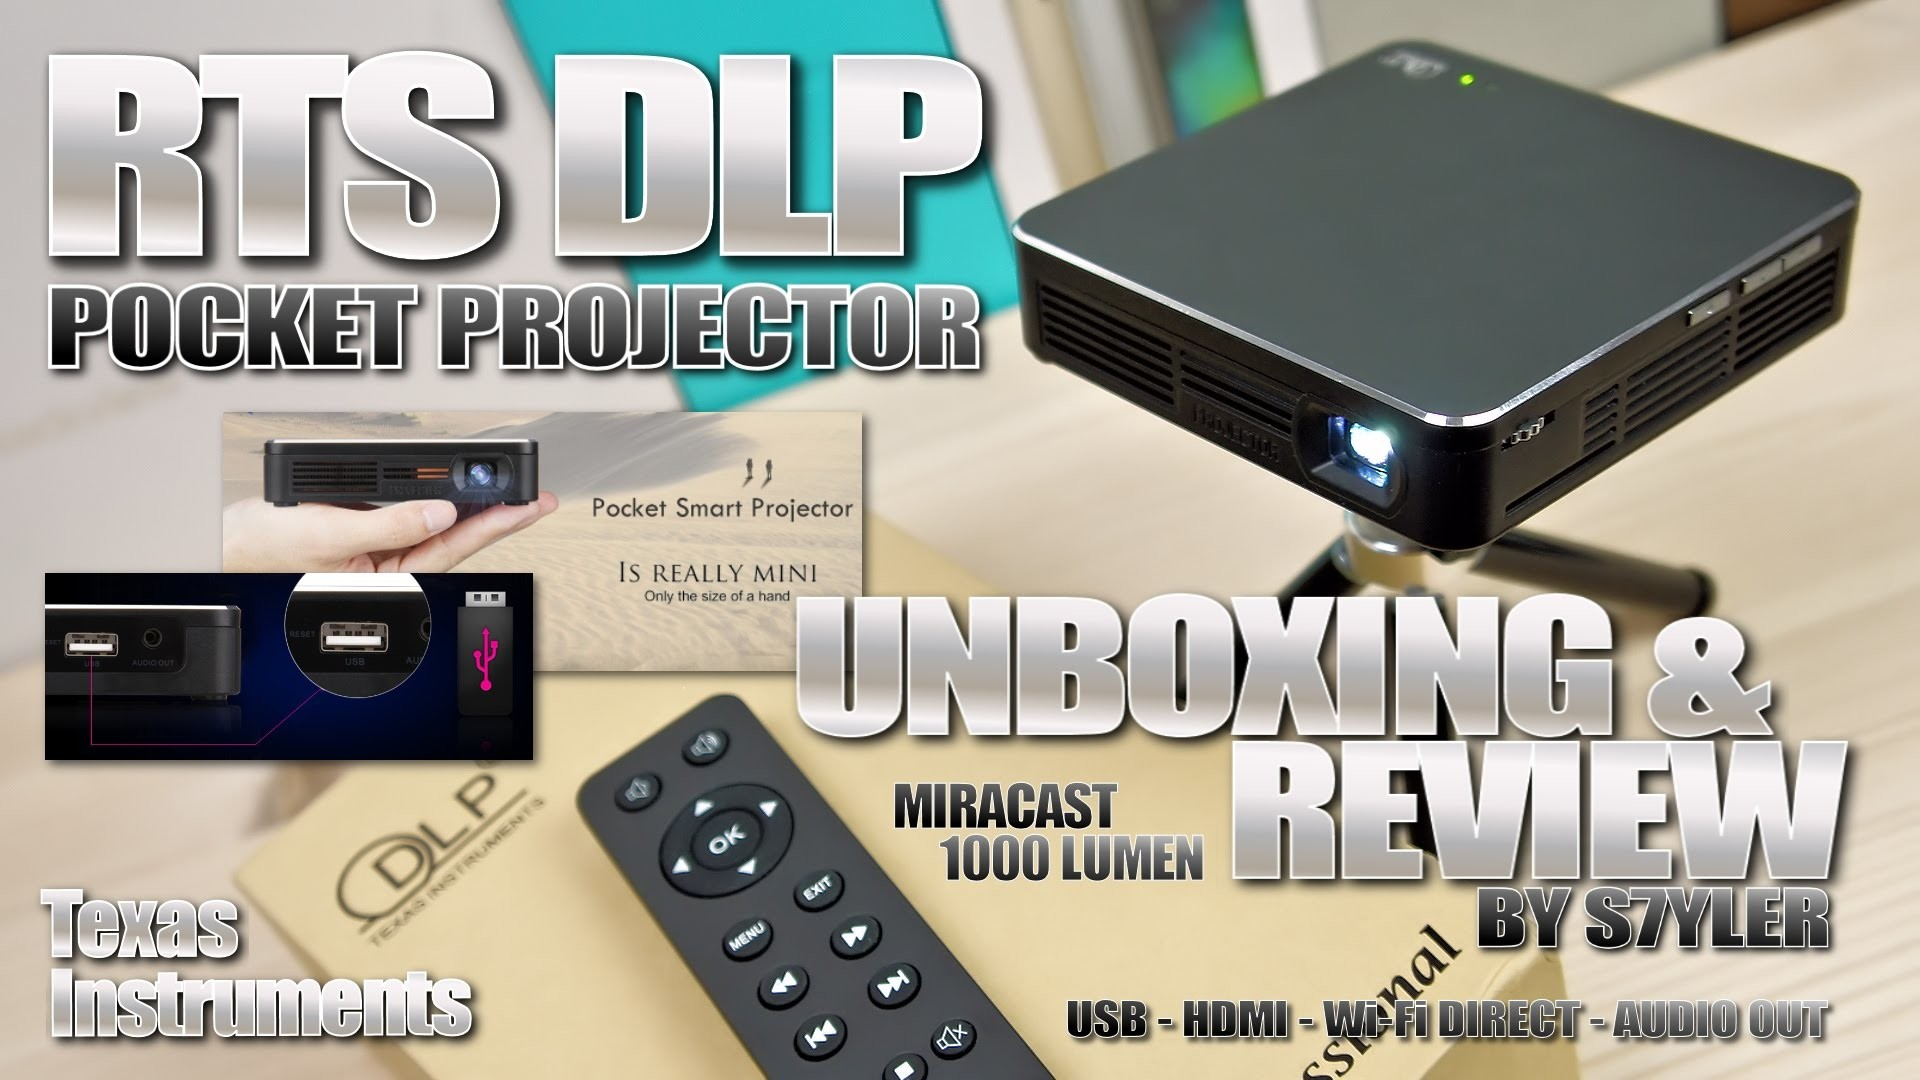 1920x1080 RTS DLP Projector (Texas Instruments) - Great Affordable Pocket Projector  with Miracast // by s7yler - YouTube